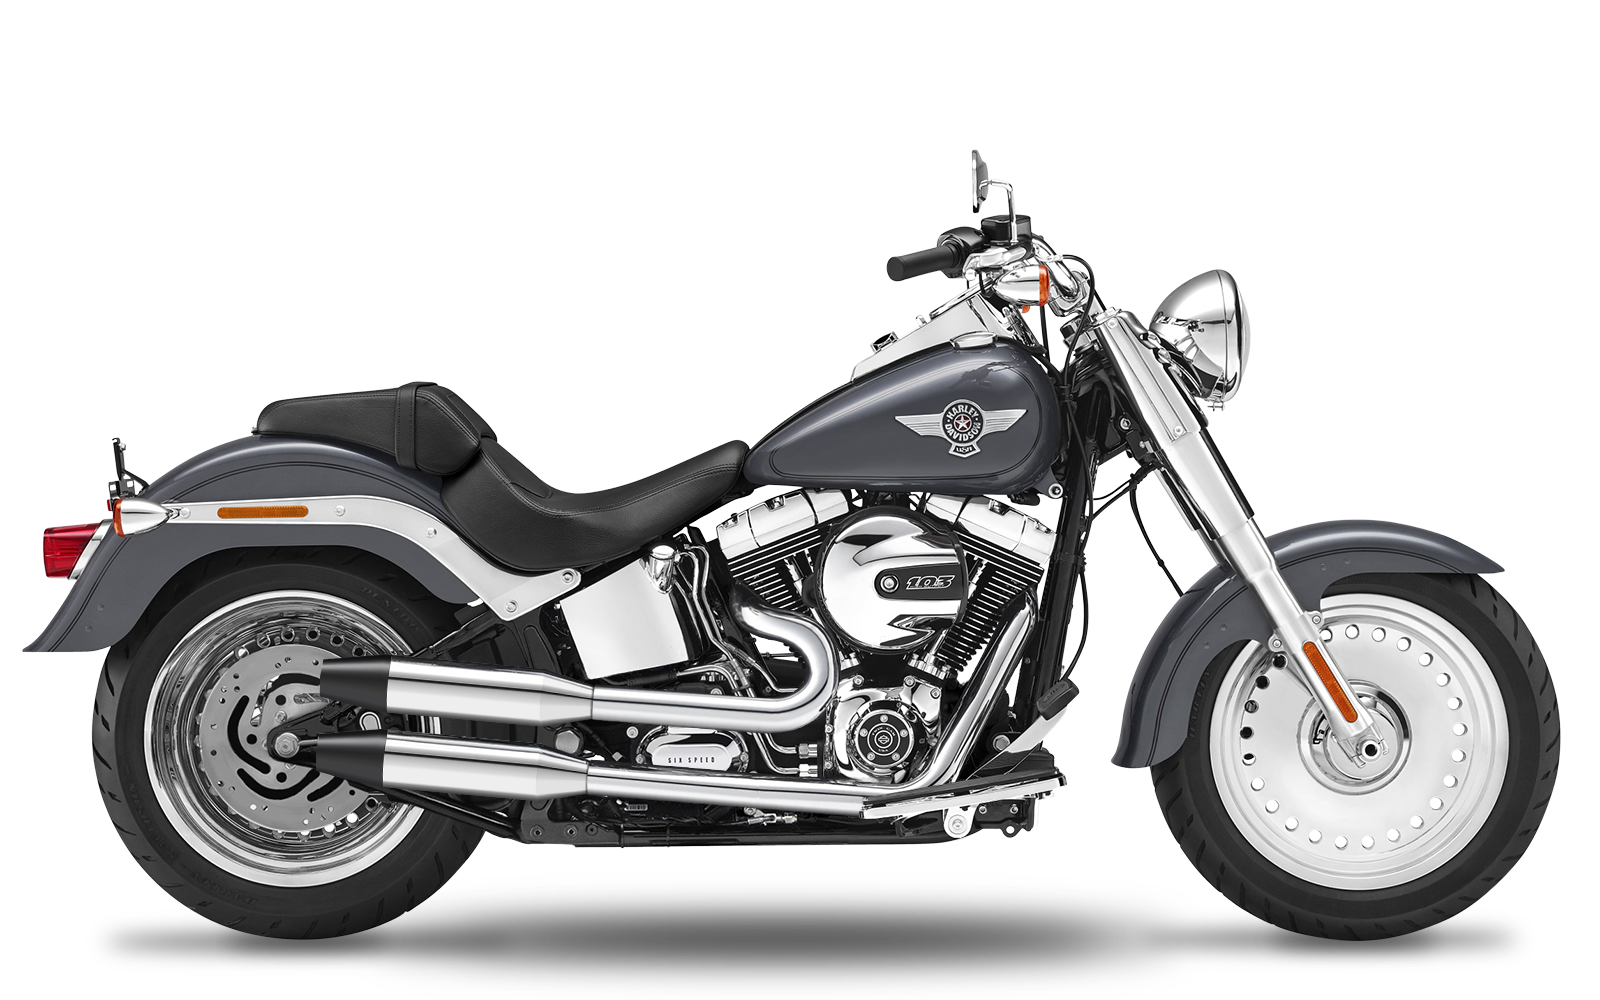 Softail - Deuce - TC88 - 2000-2006 - Complete systems